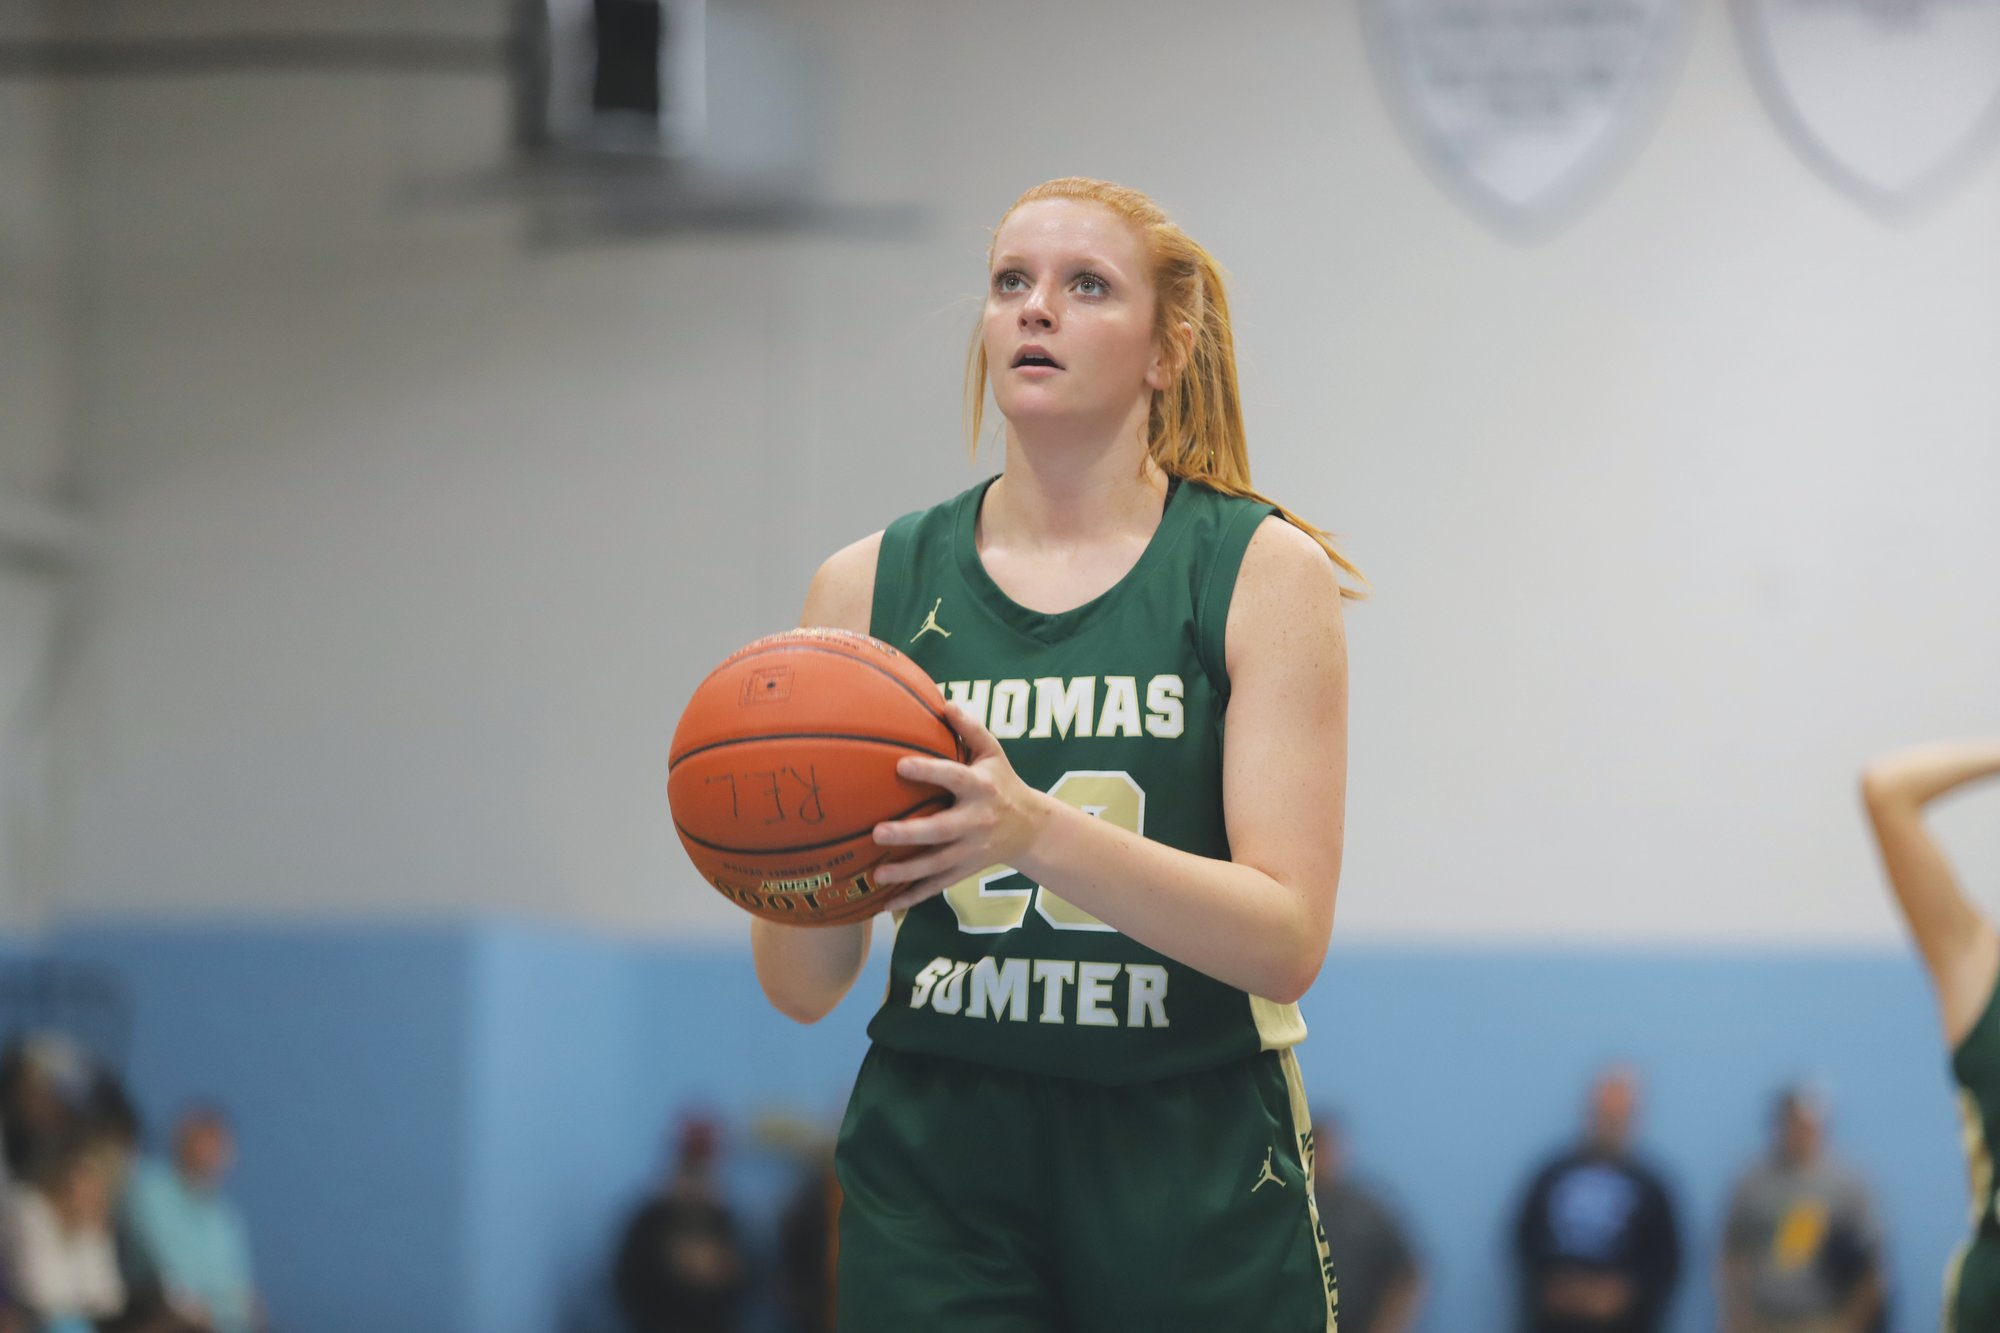 Thomas Sumter is looking for a big season for Karleigh Young in hopes it can return to the SCISA 2A state championship game in Tanner Brunson's first year as head coach.